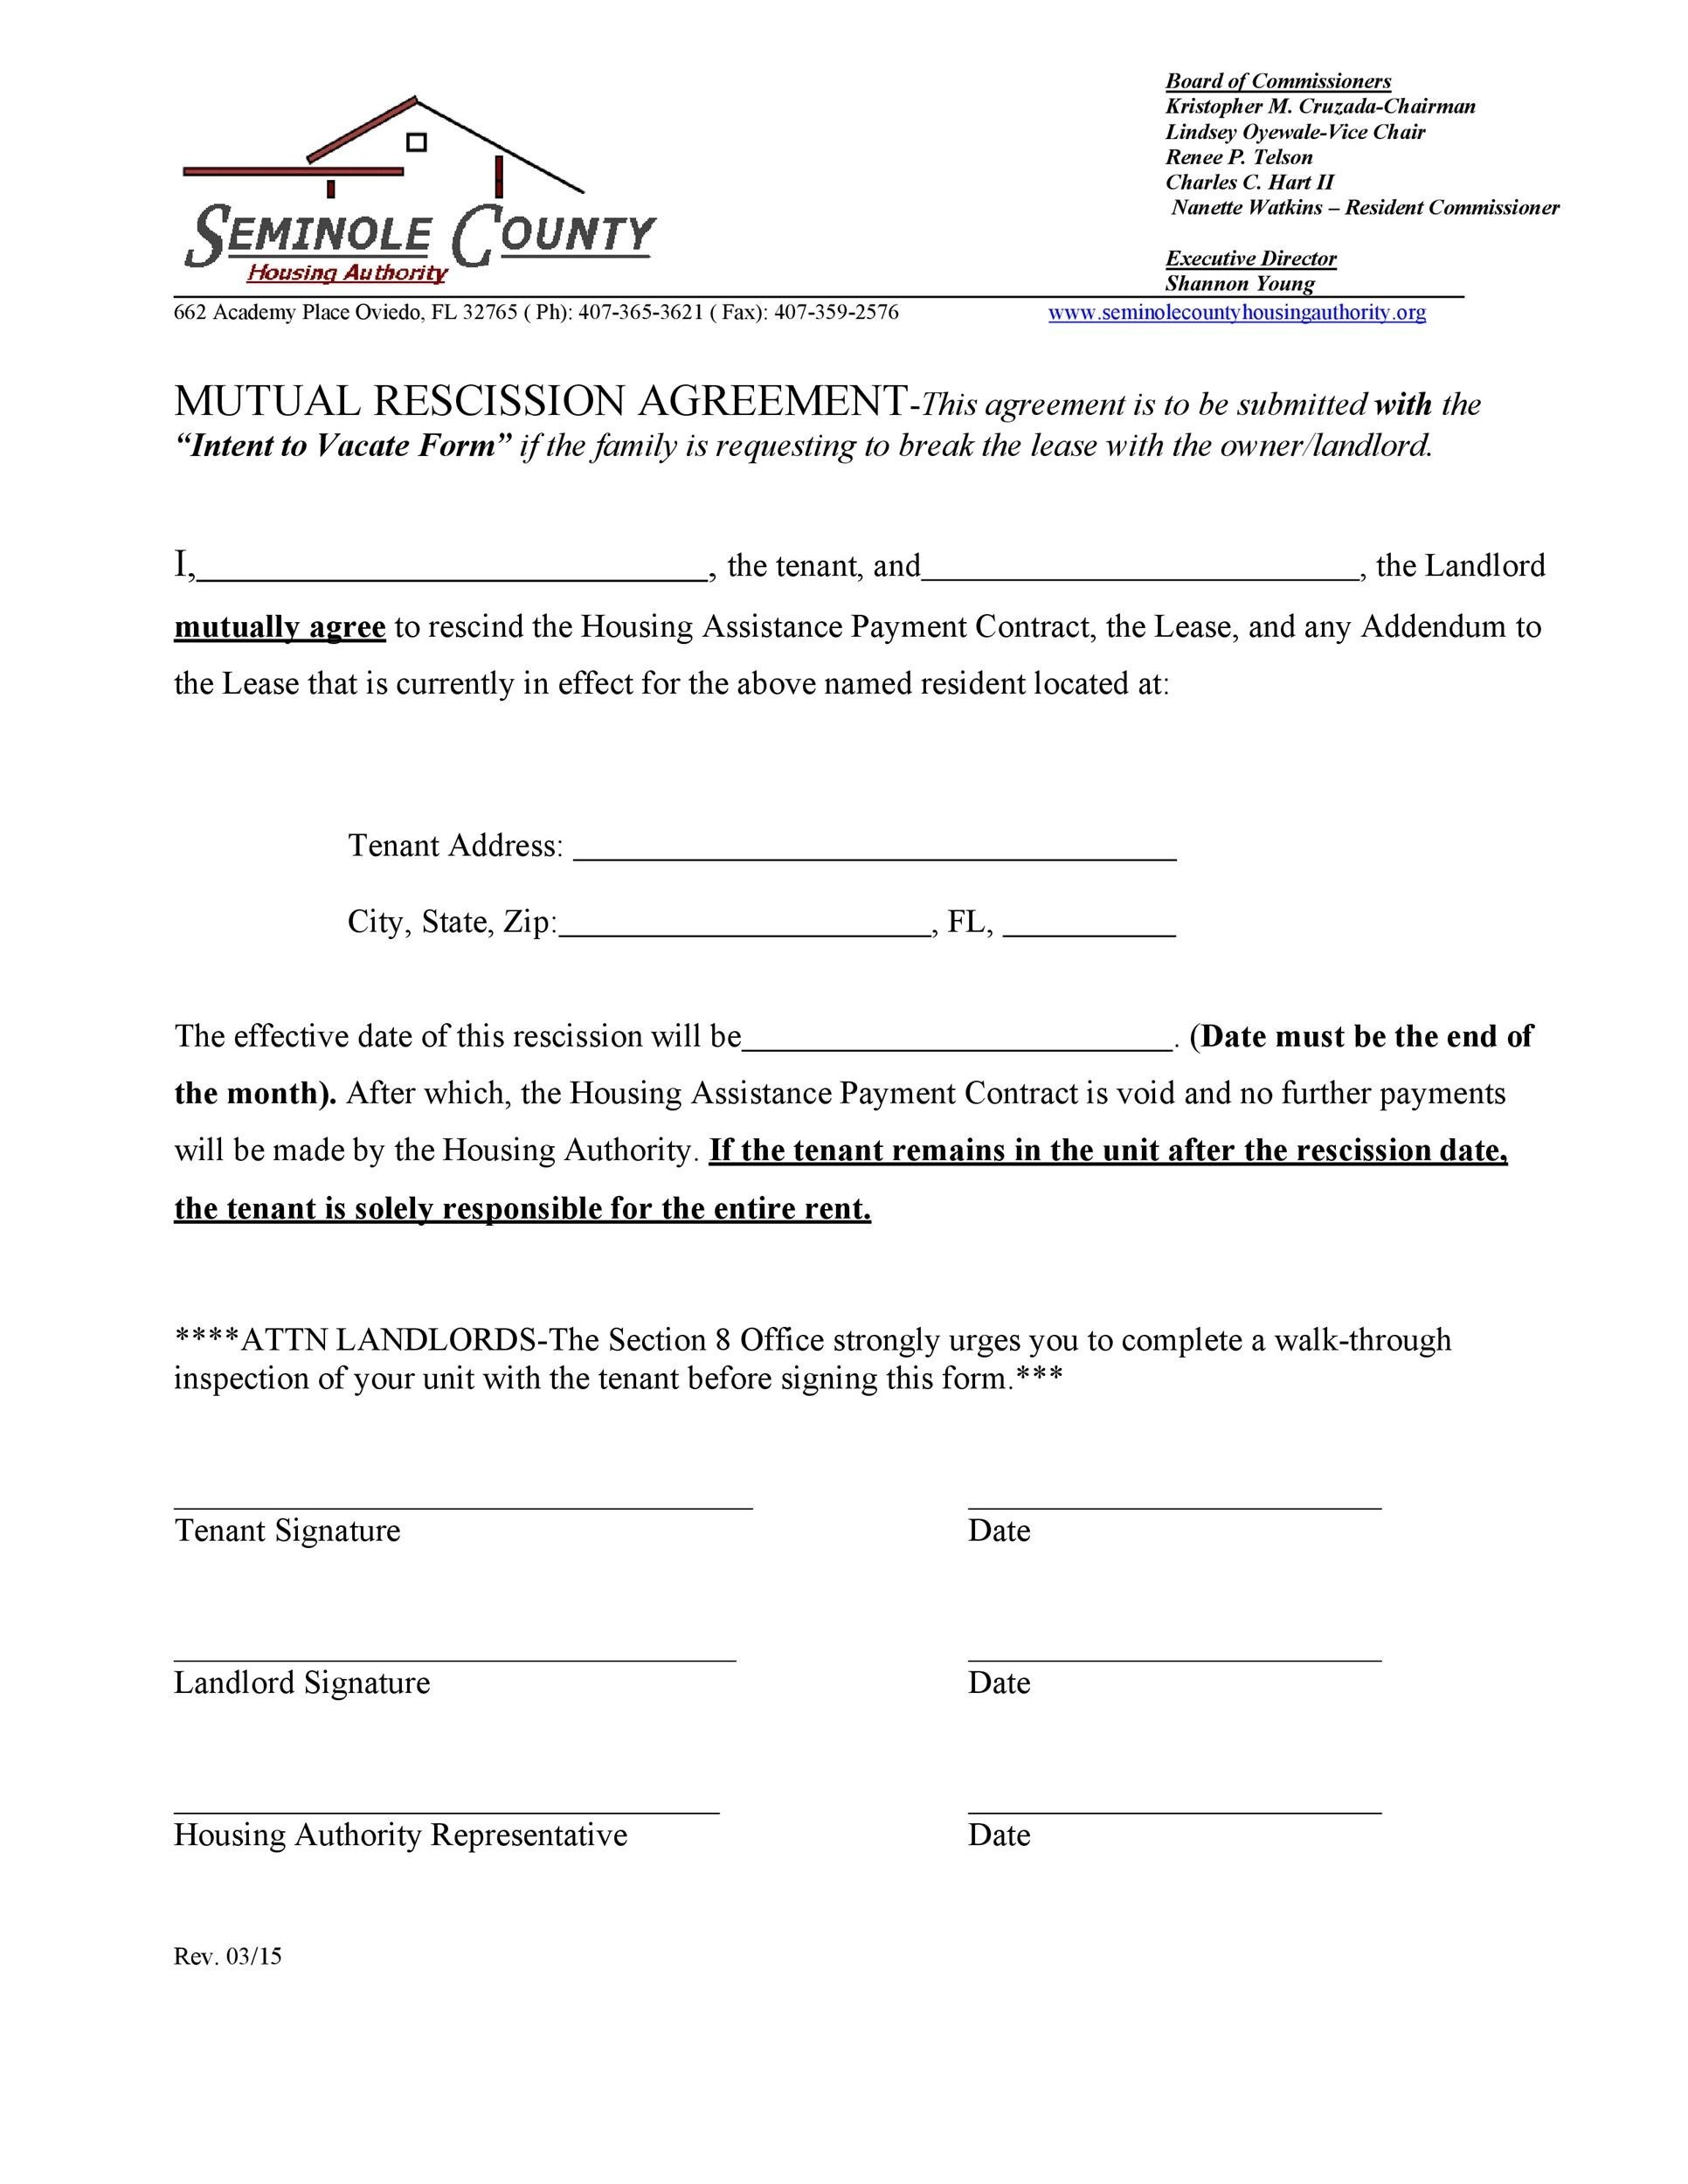 Free rescission agreement 32